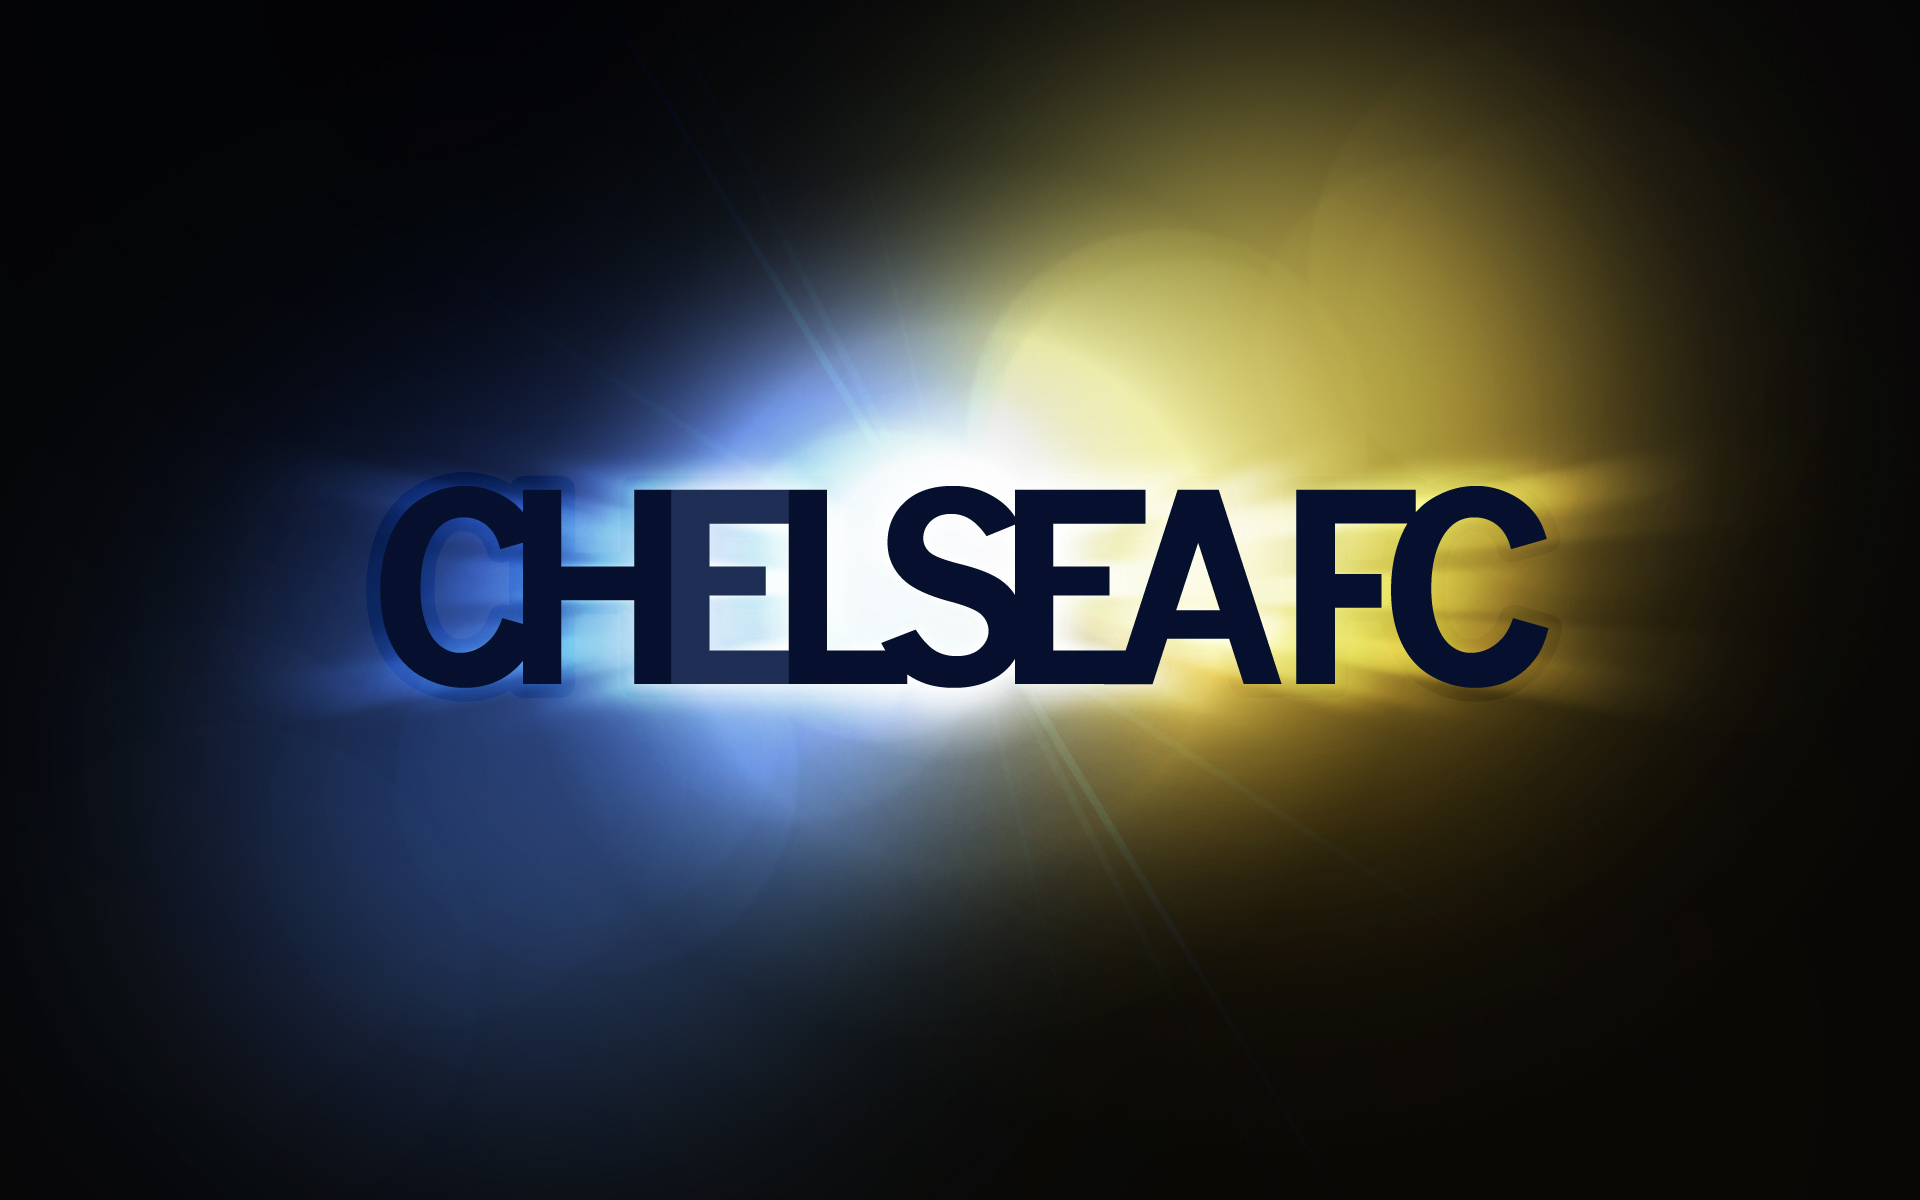 Wallpaper Chelsea 3d Android Chelsea Free Hd Wallpapers Page 0 Wallpaperlepi